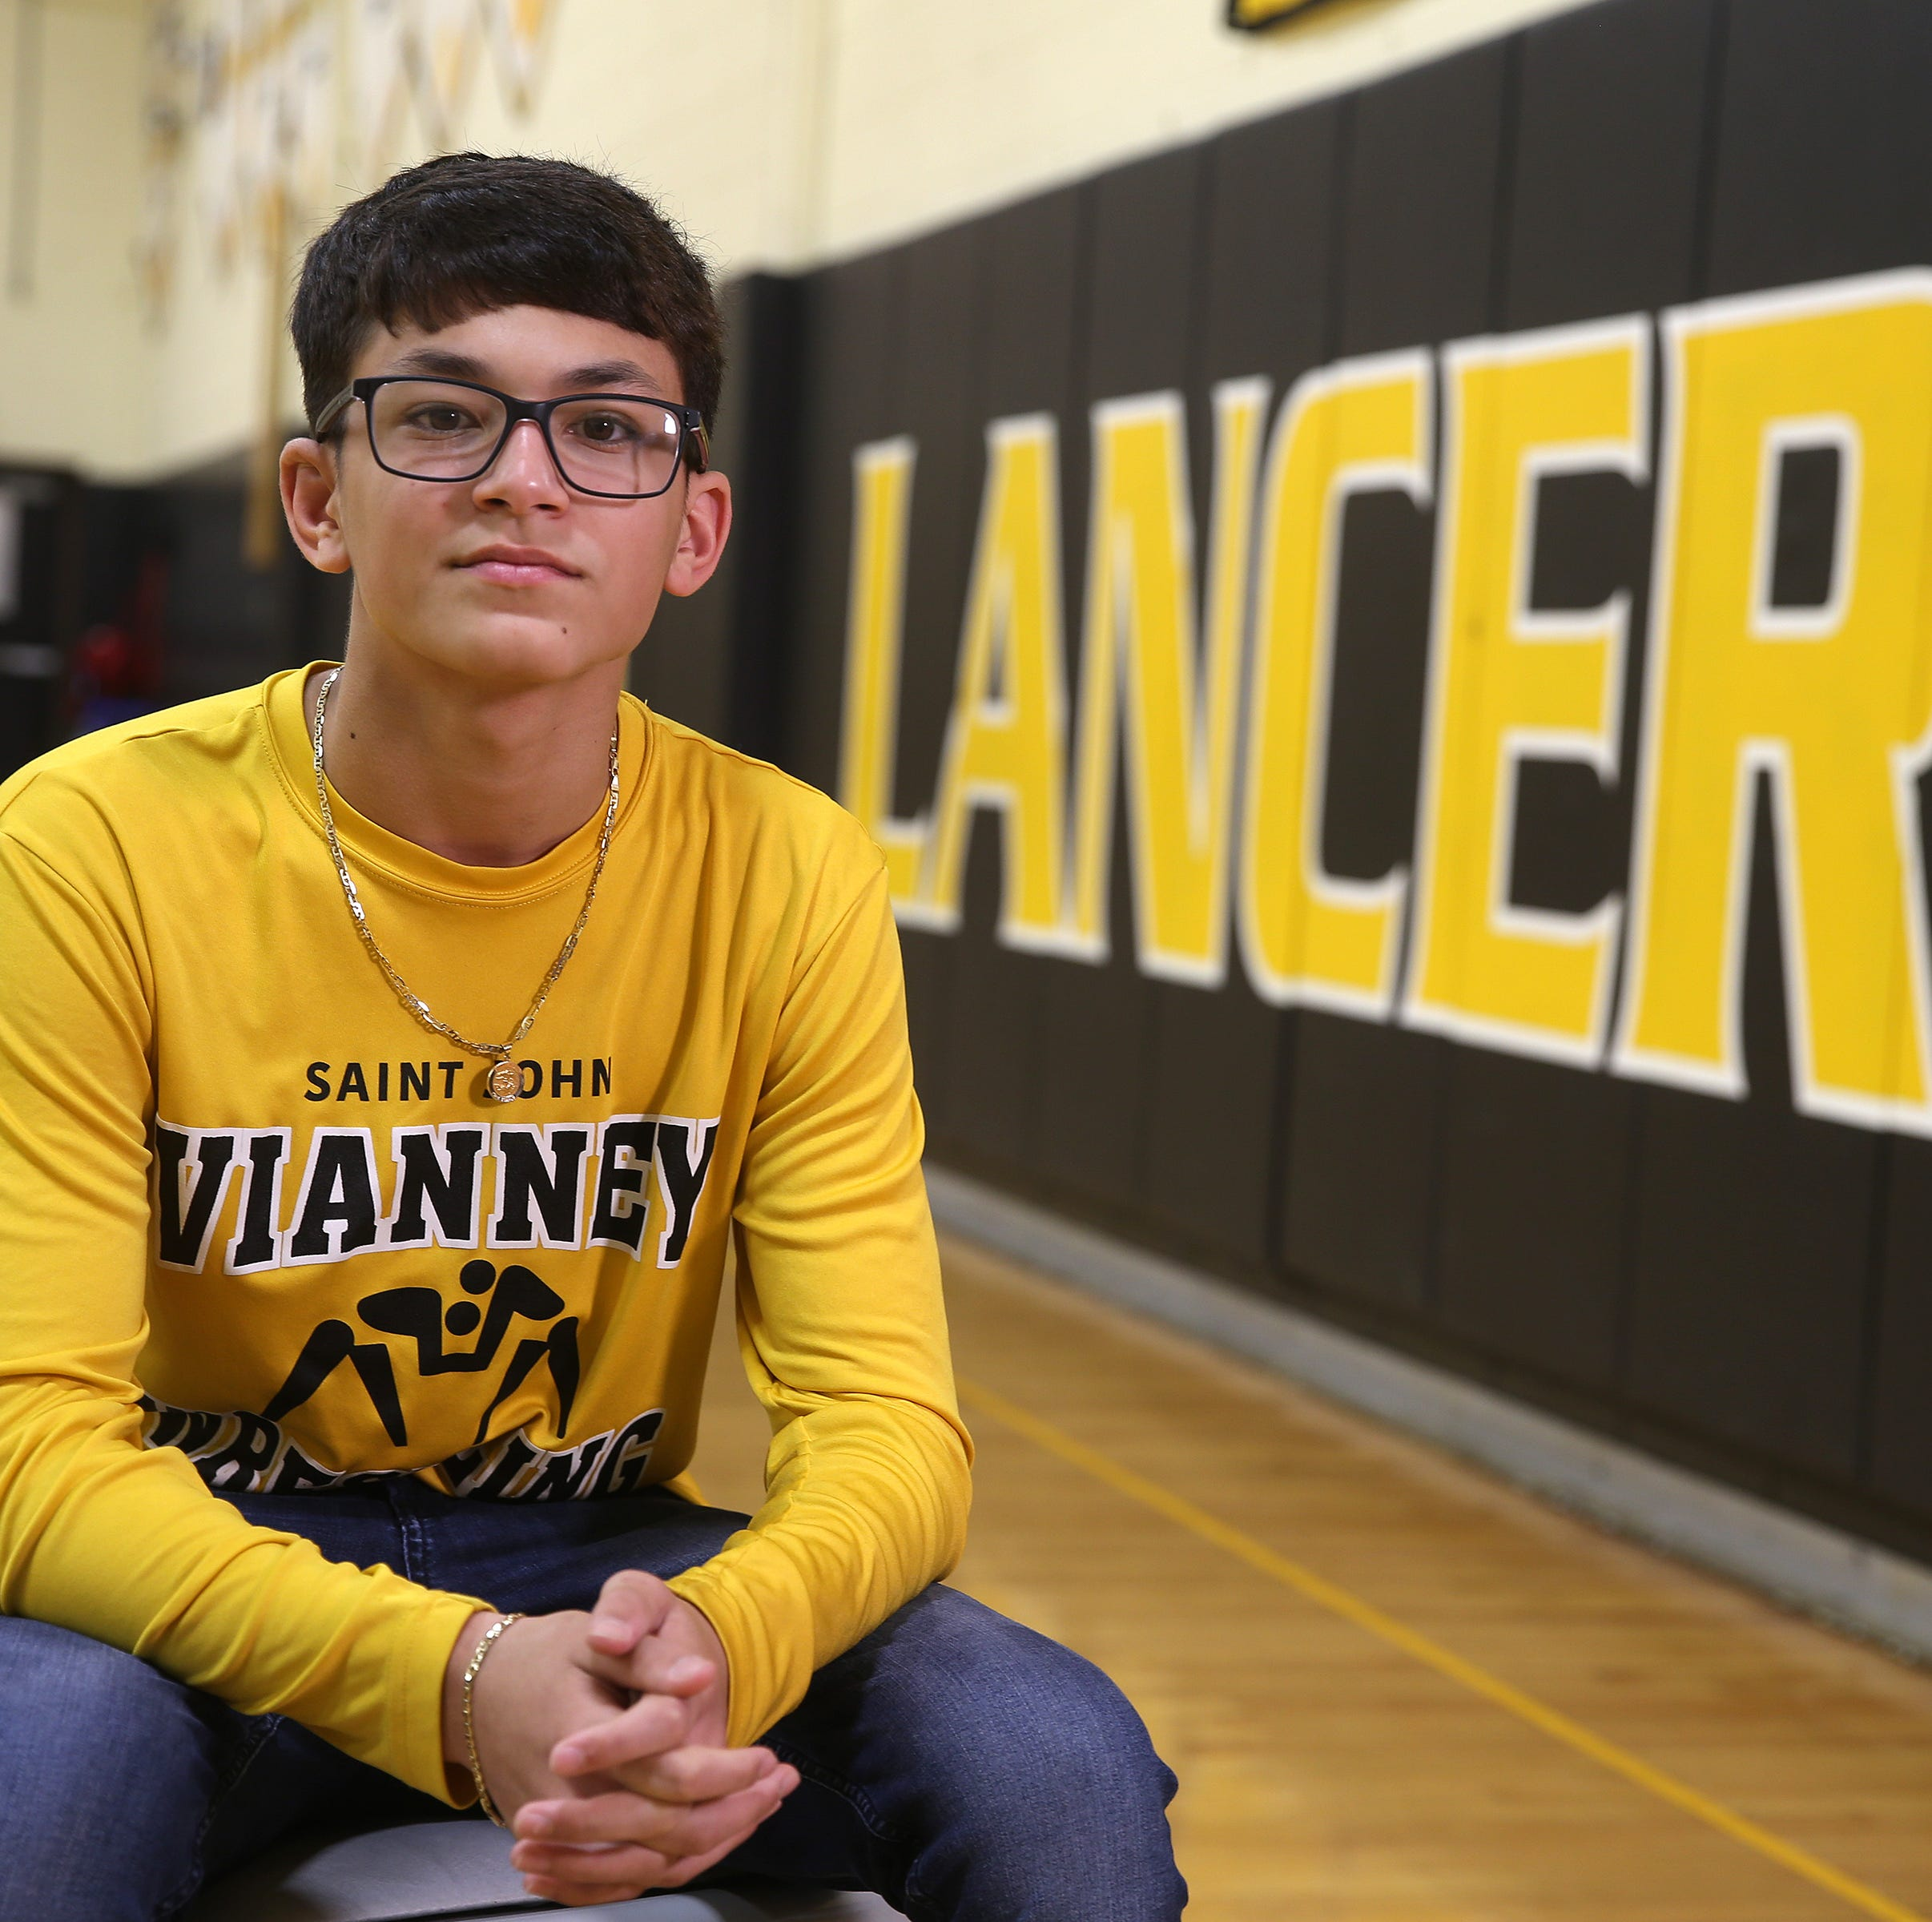 St. John Vianney freshman's father died, but he wrestled on: 'I had nothing to lose. I already lost everything.'